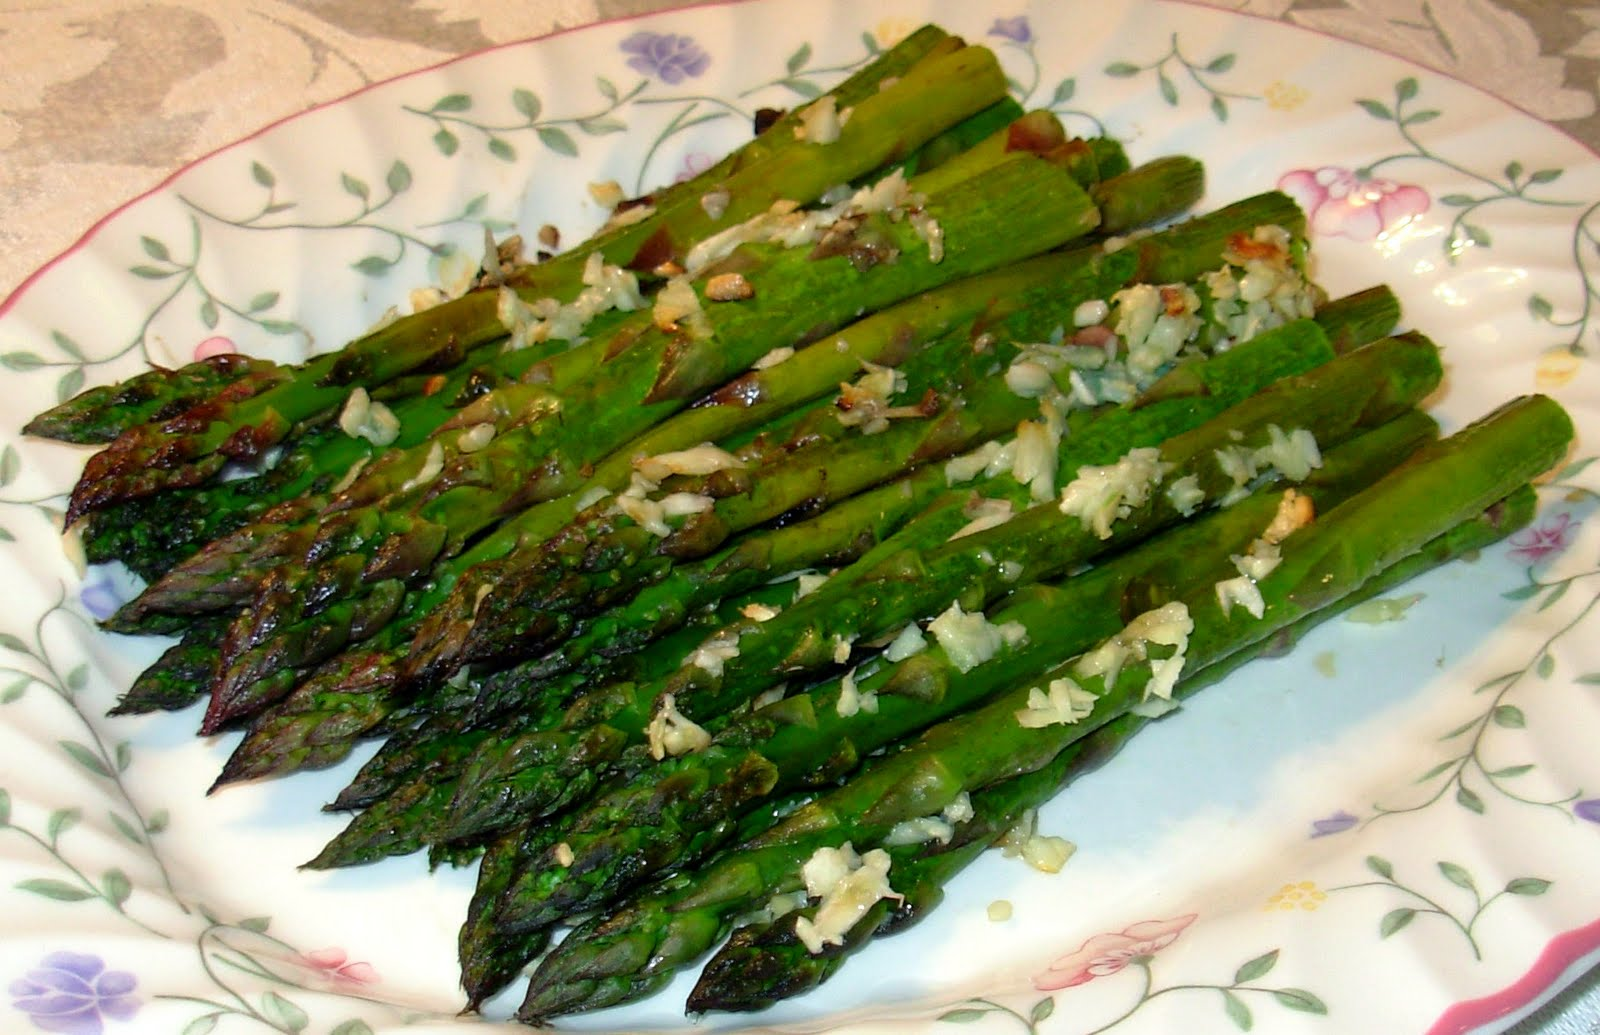 Roasted Asparagus is basted with olive oil, sprinkled with garlic